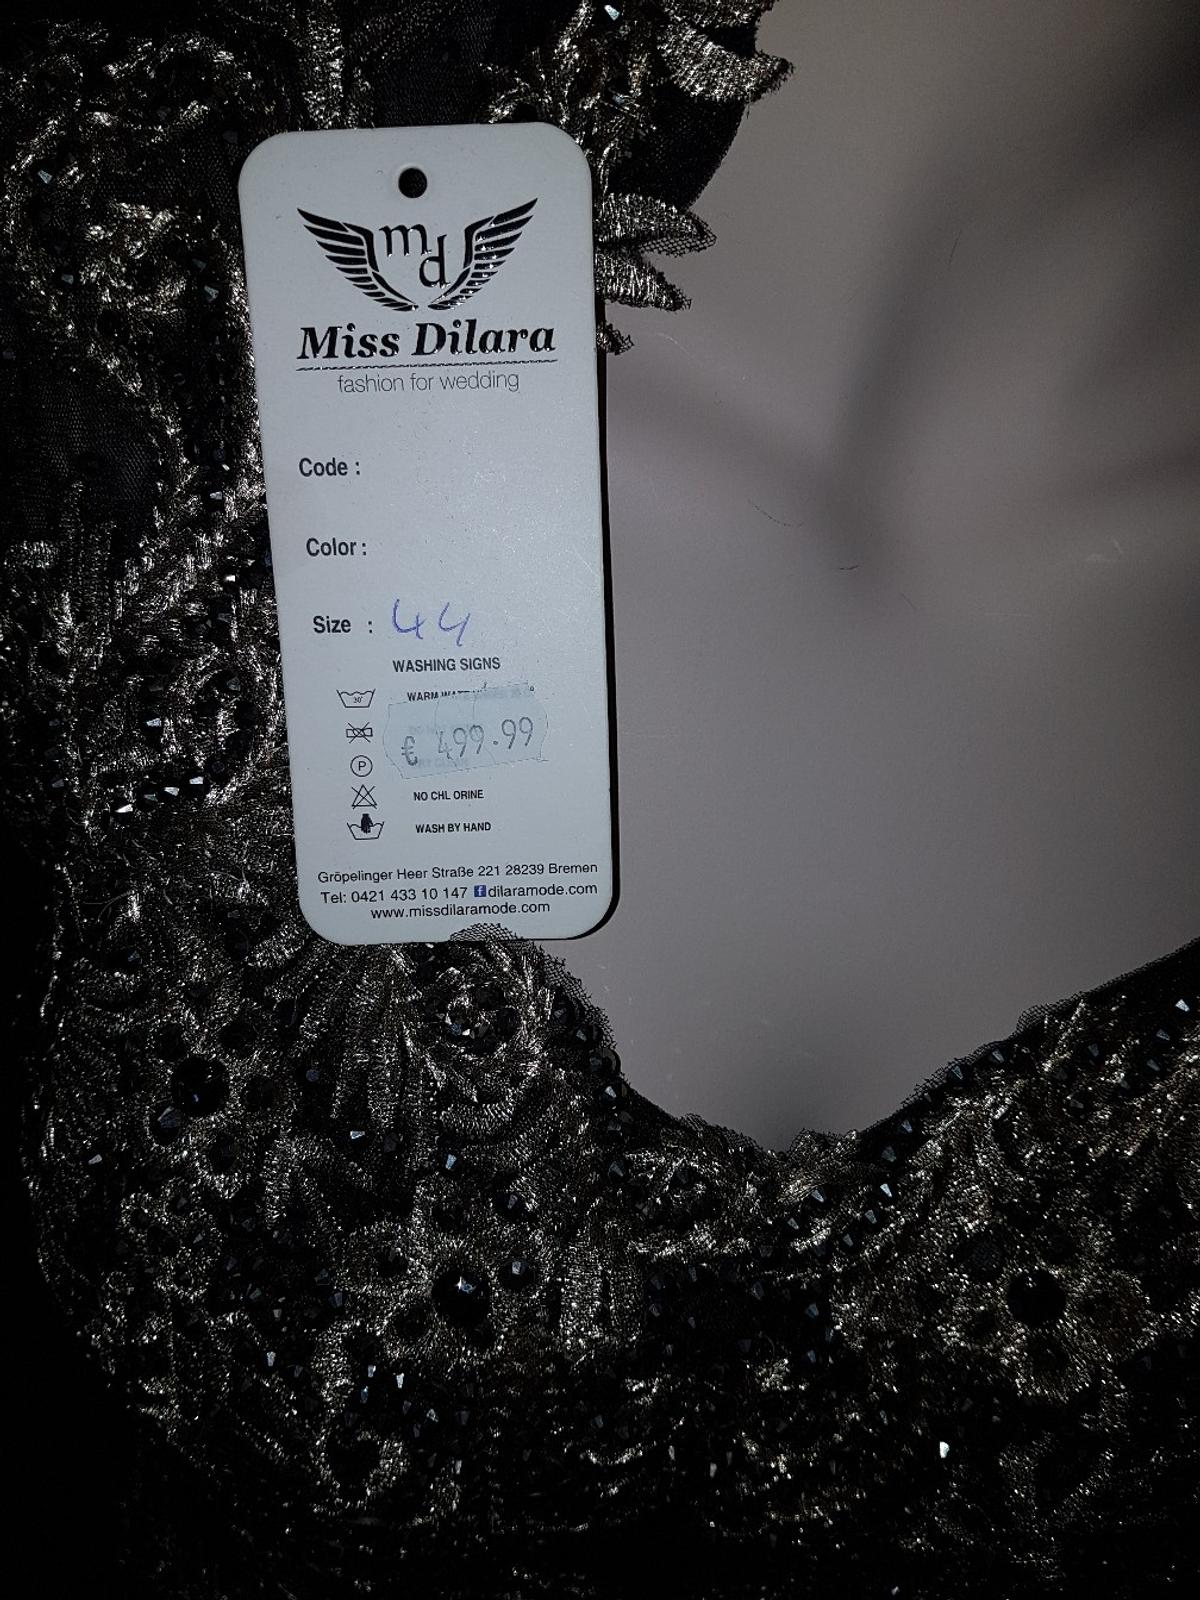 abendkleid schwaz gold in 28779 bremen for €270.00 for sale